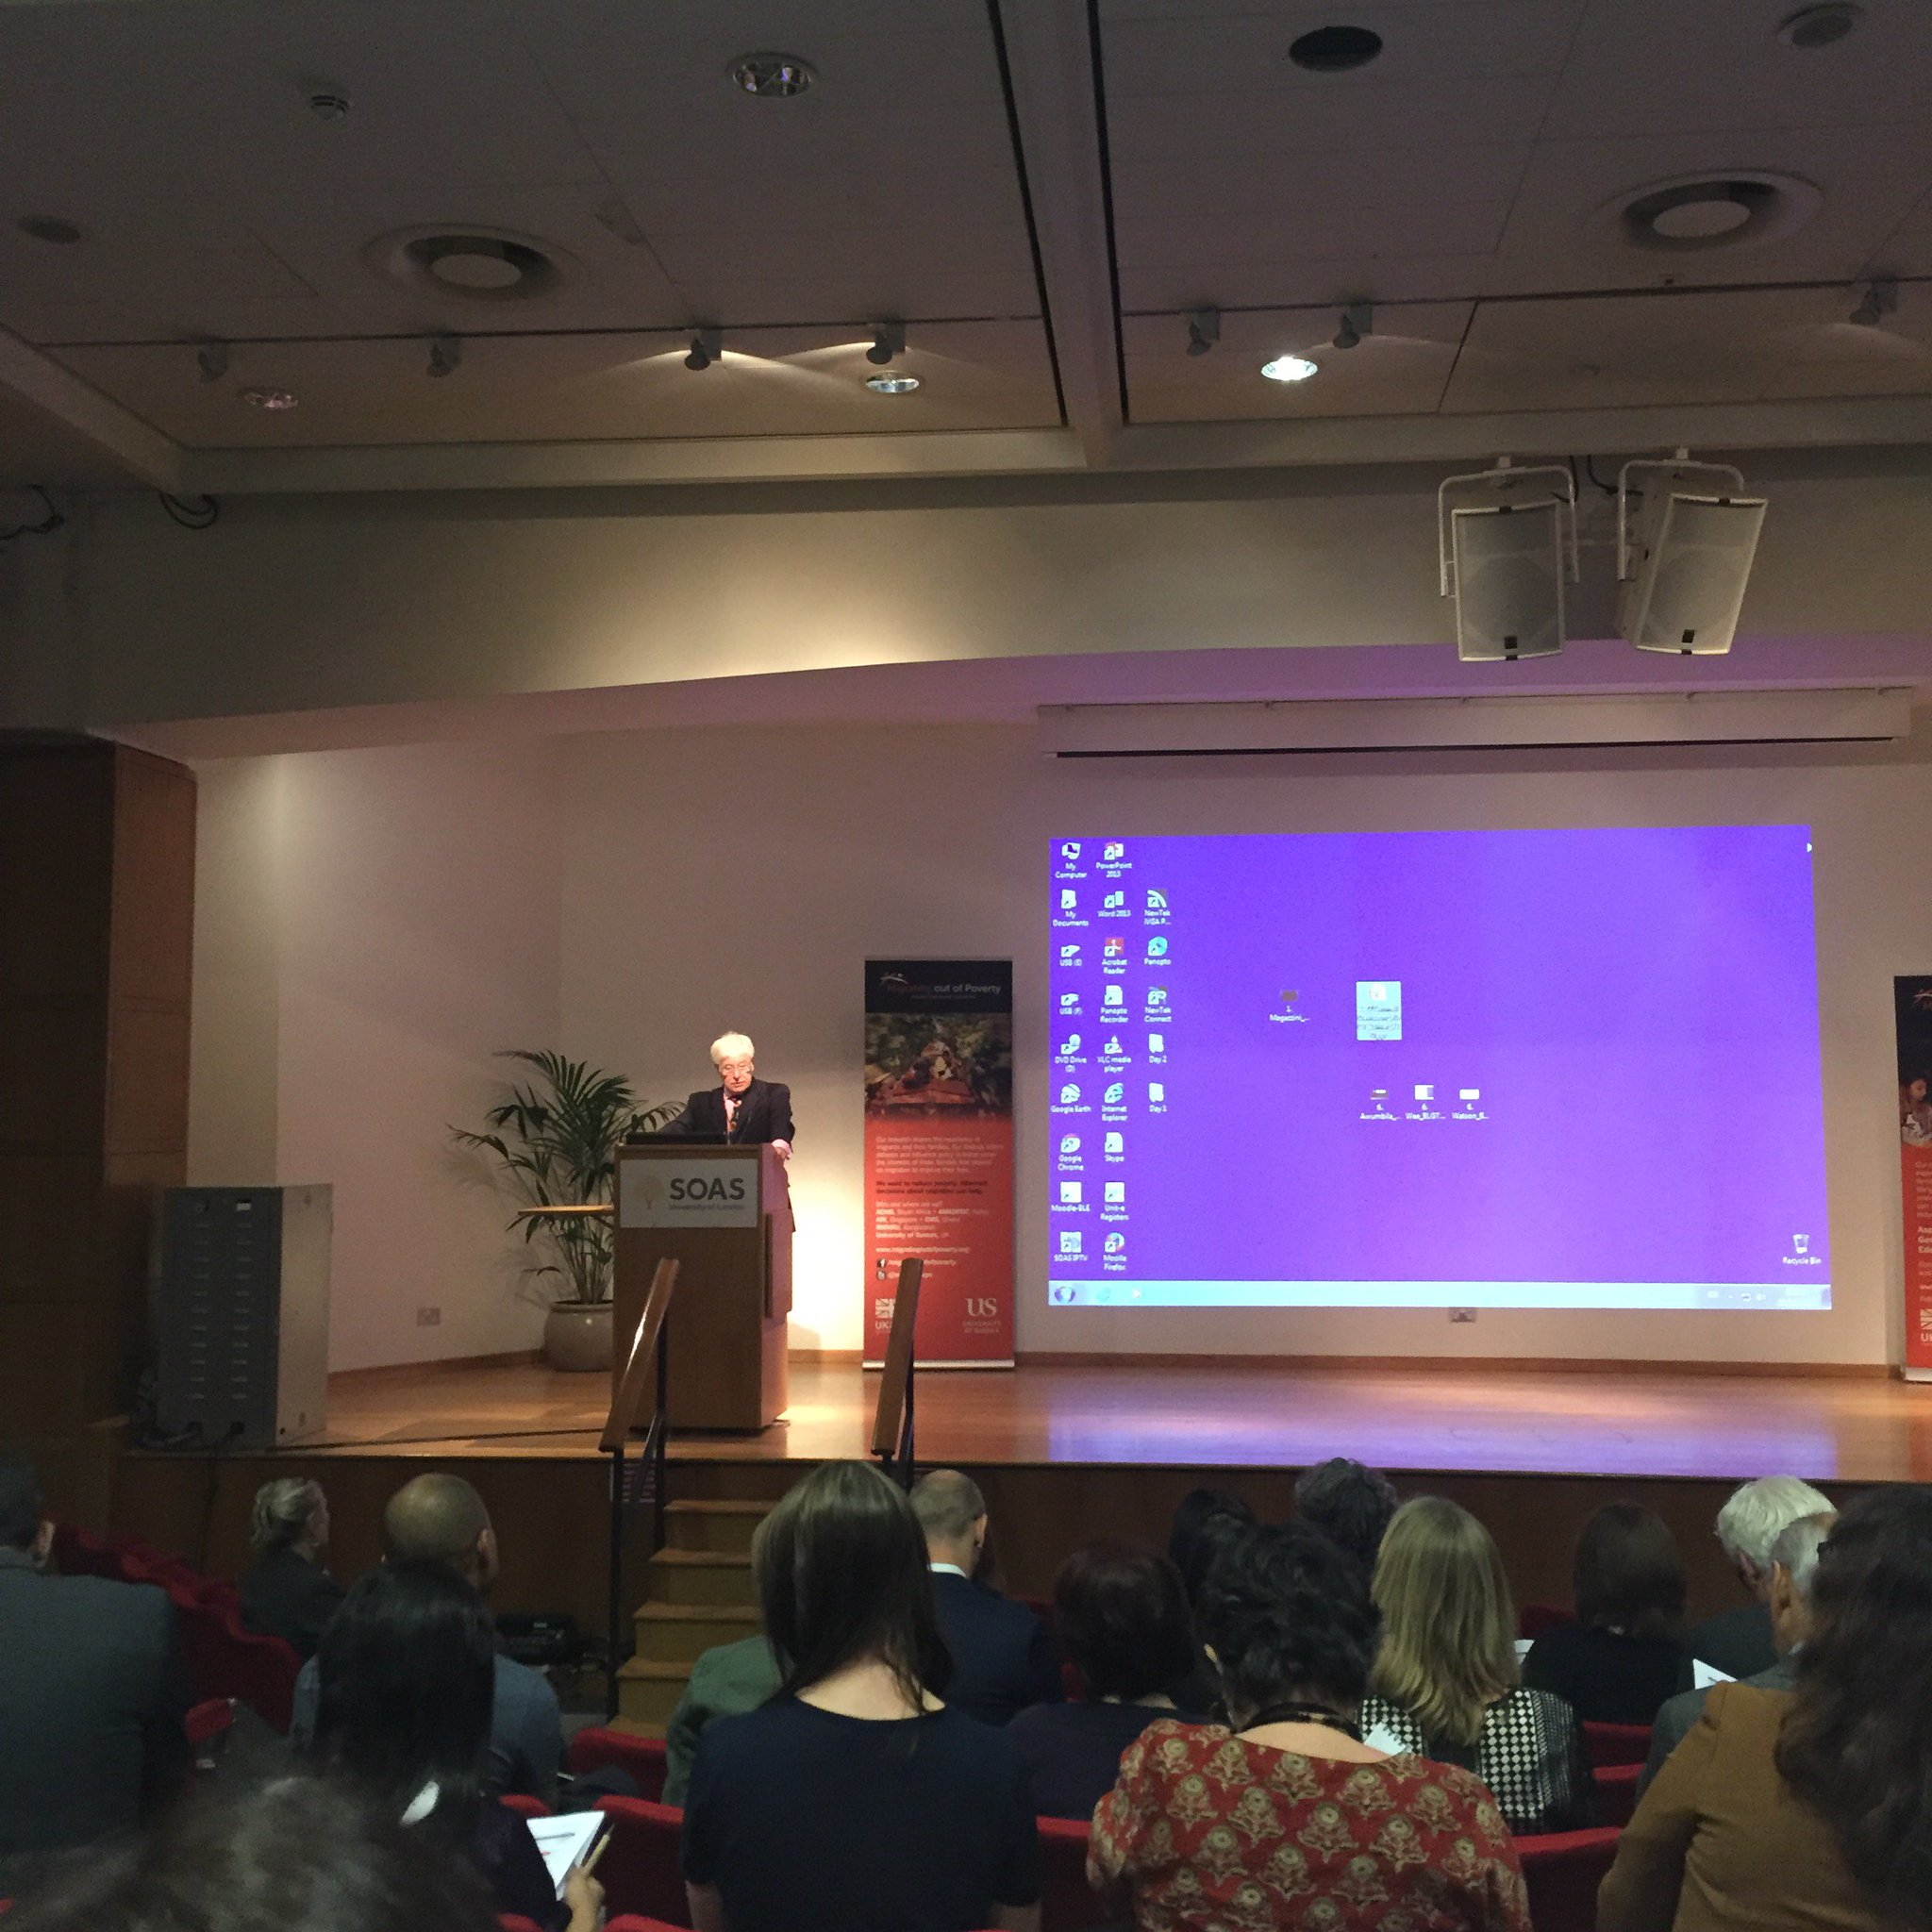 Alan Winters opening the #MOOPconf @SOAS looking forward to 2 days of Interesting speakers and discussions. @MigrationRPC https://t.co/BpZ3CaqLfp